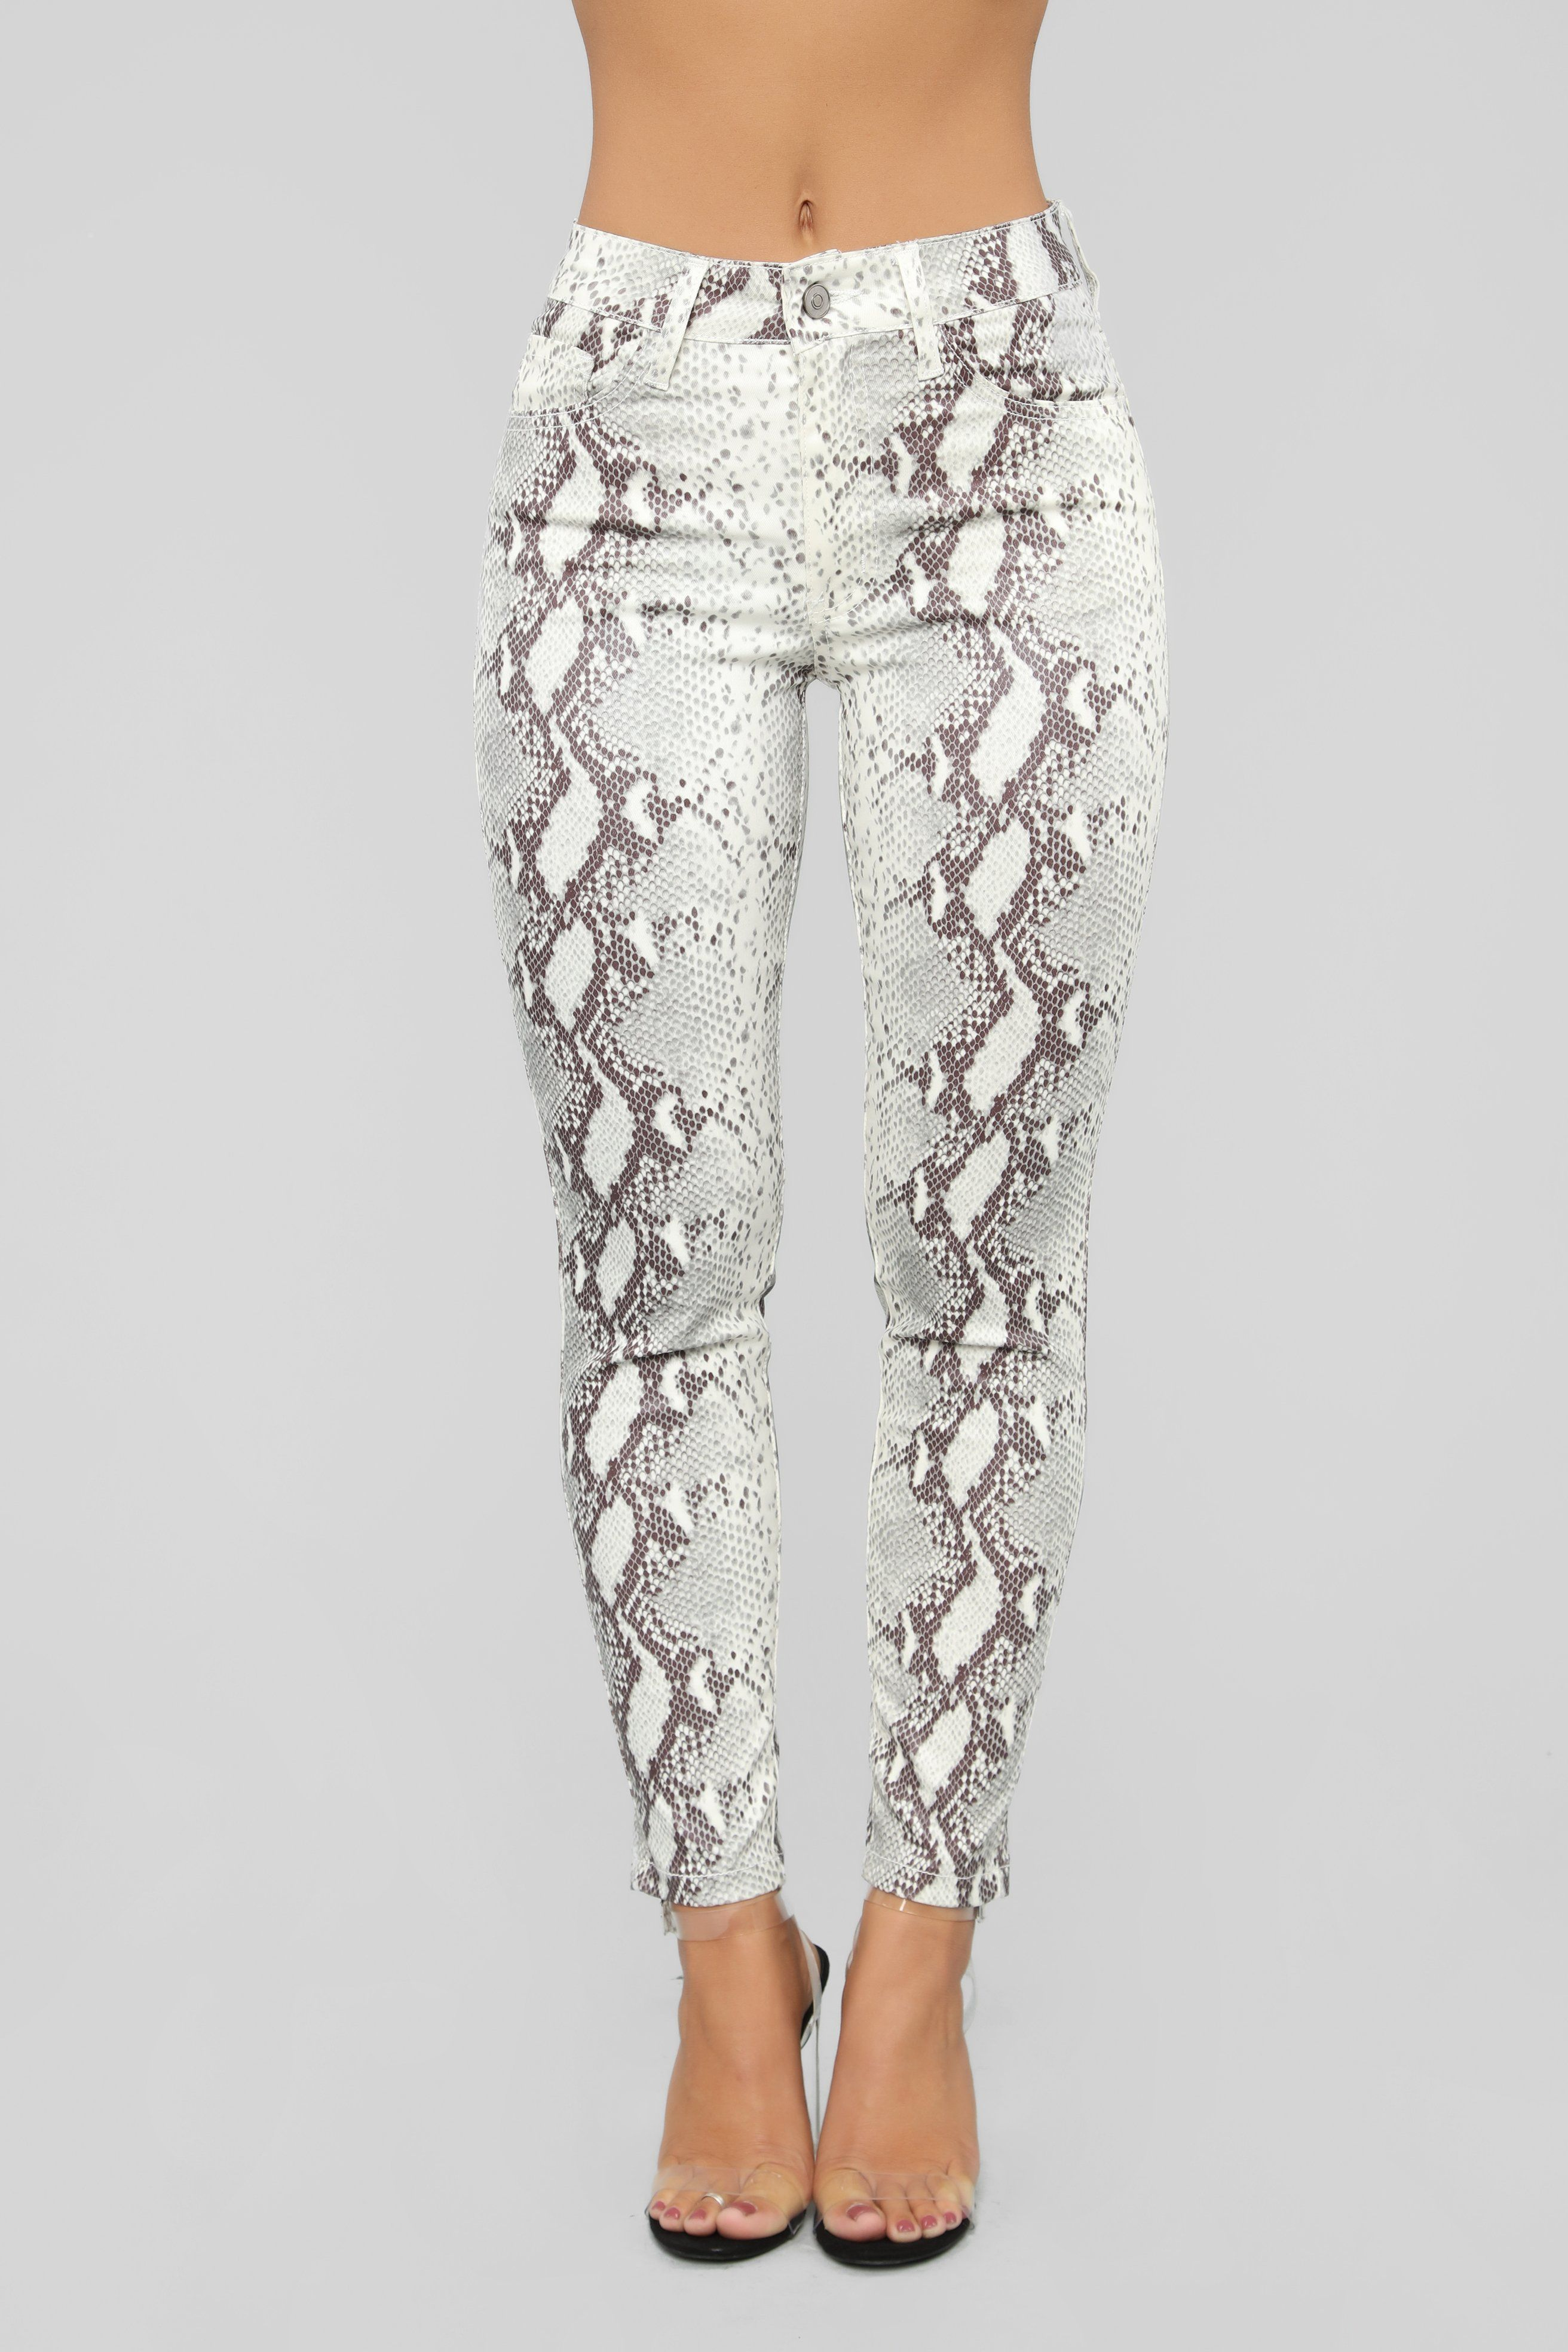 Snakes In The Grass Print Pants Grey Snake print pants